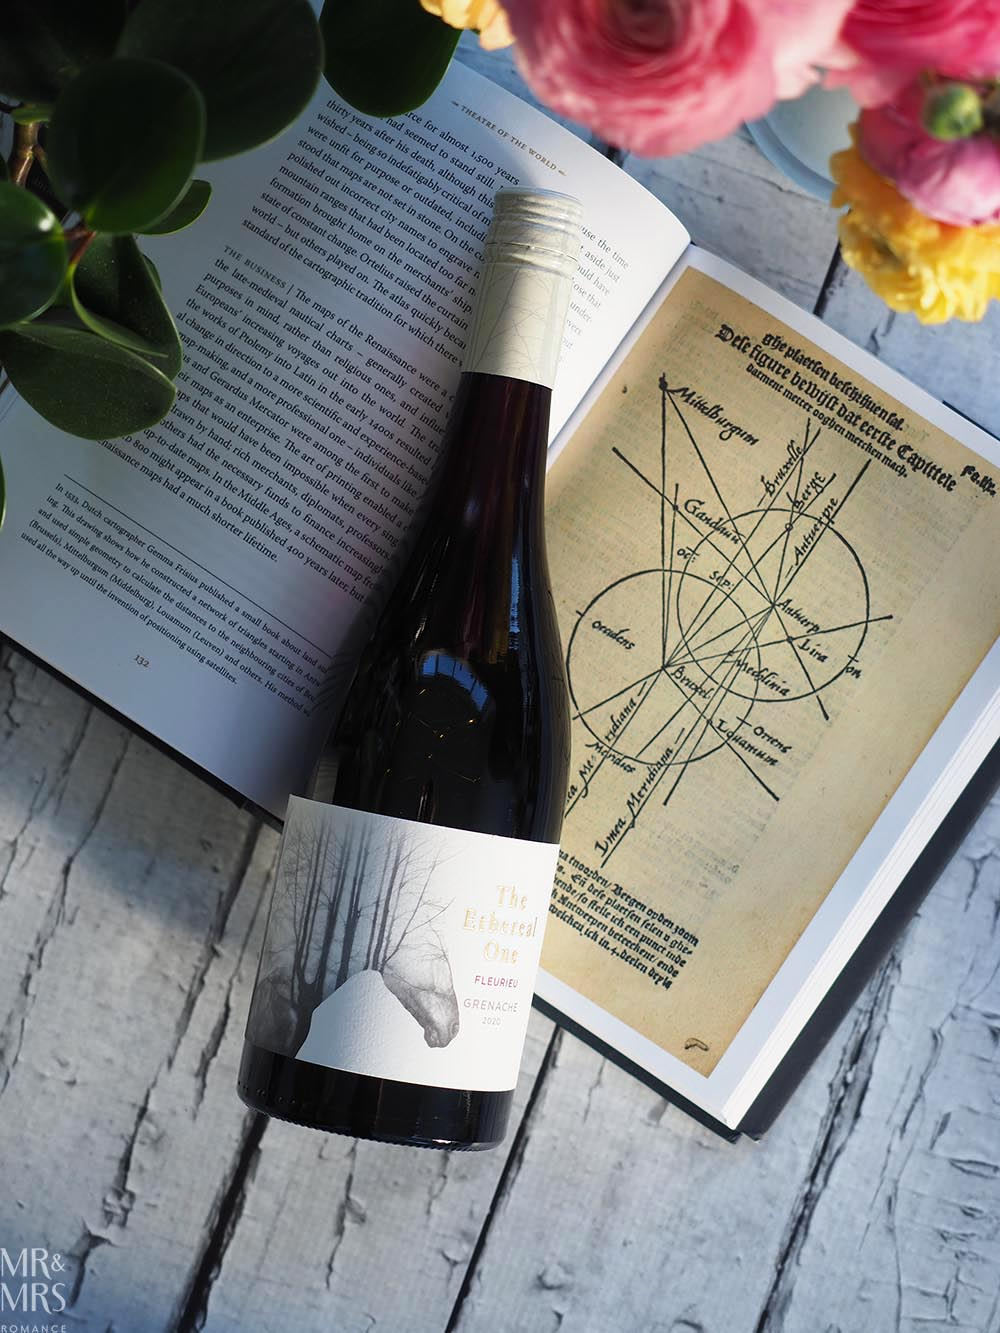 5 Grenache for World Grenache Day - The Ethereal One Grenache